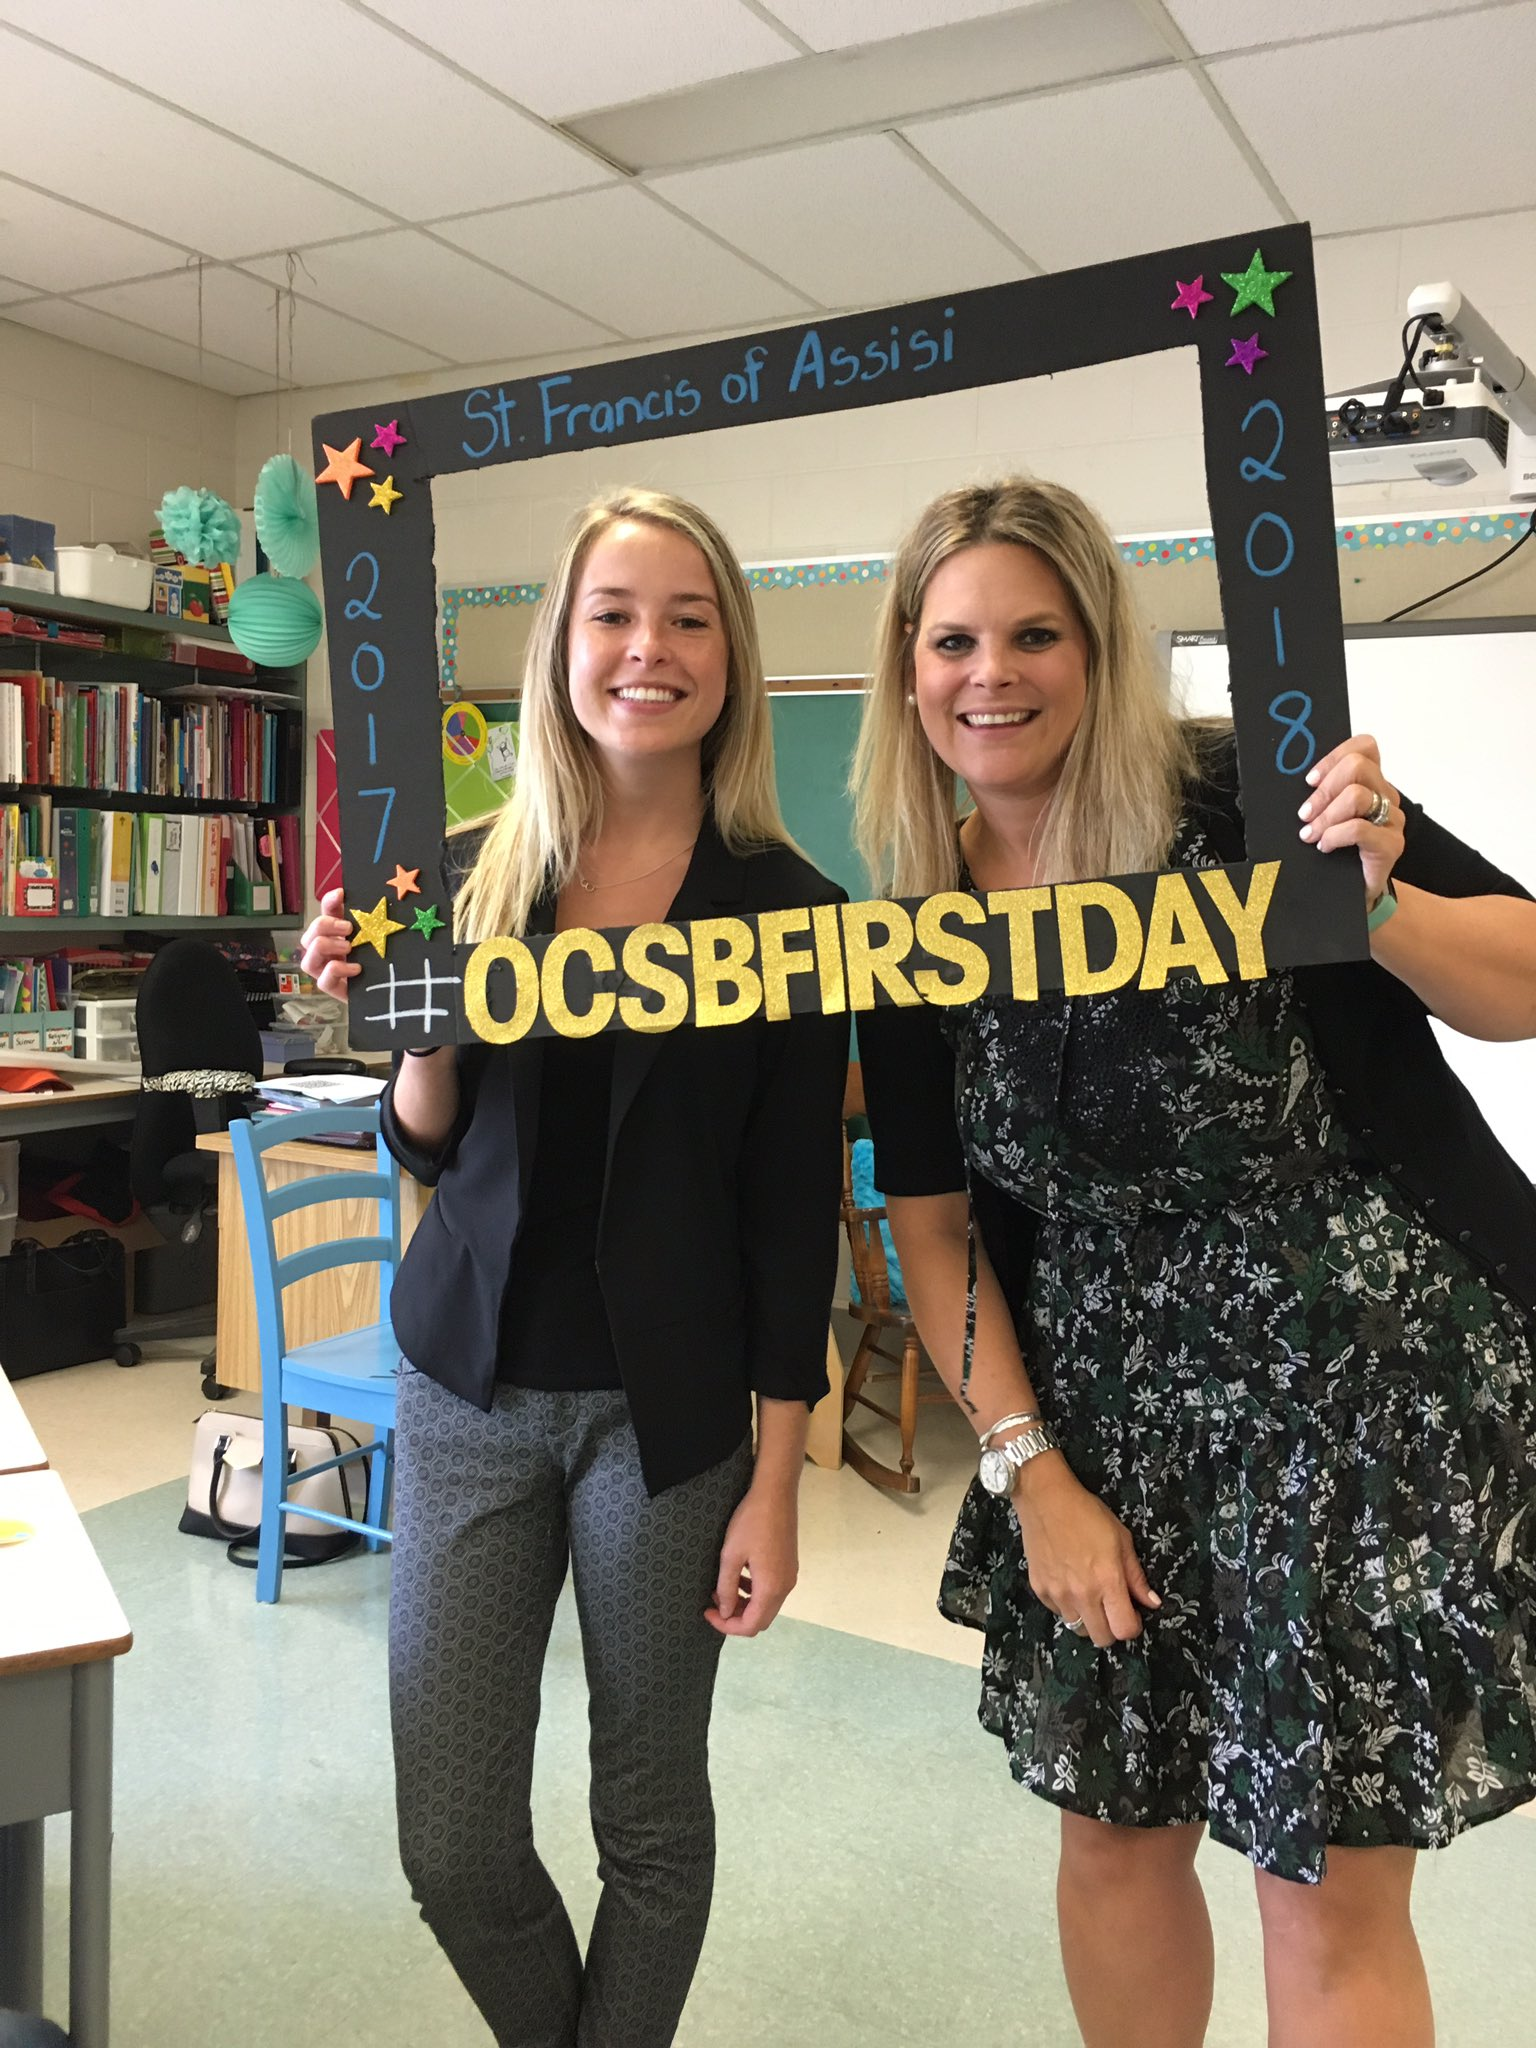 #ocsbFirstday Excited to meet our new students in grade 3. @FRAAssisiSchool https://t.co/ALvh1IVctY